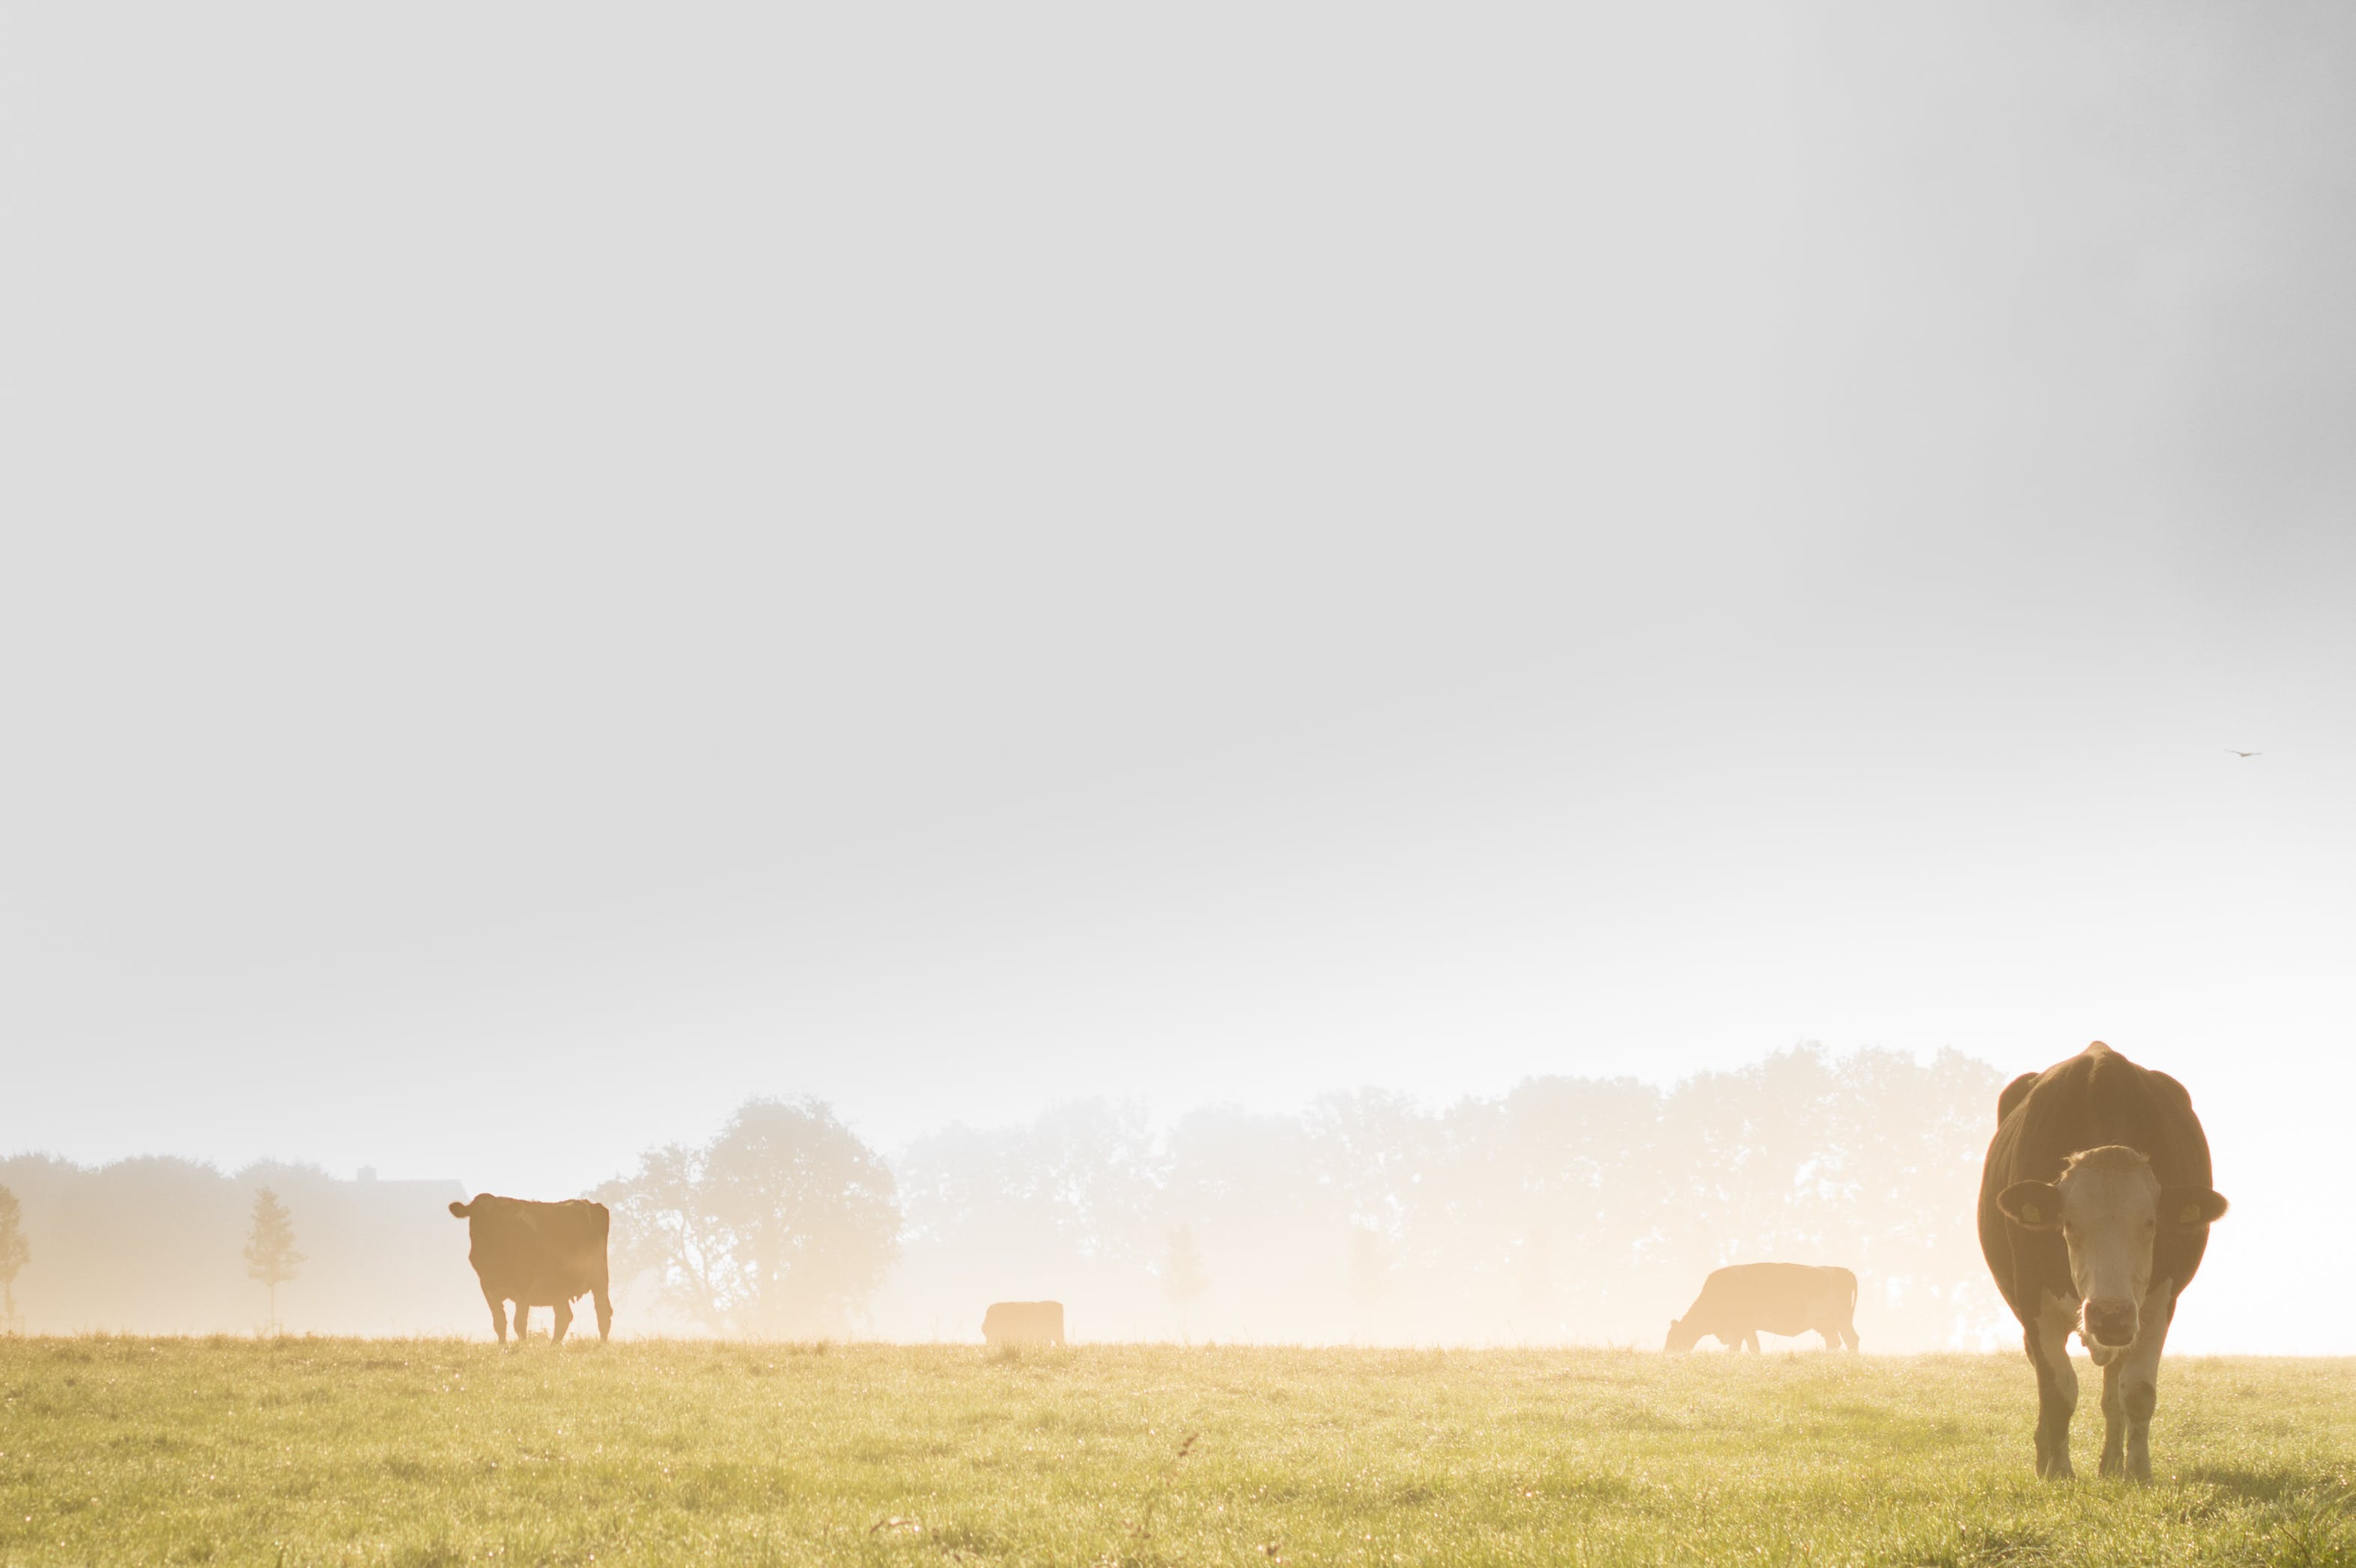 agriculture, animals, cows